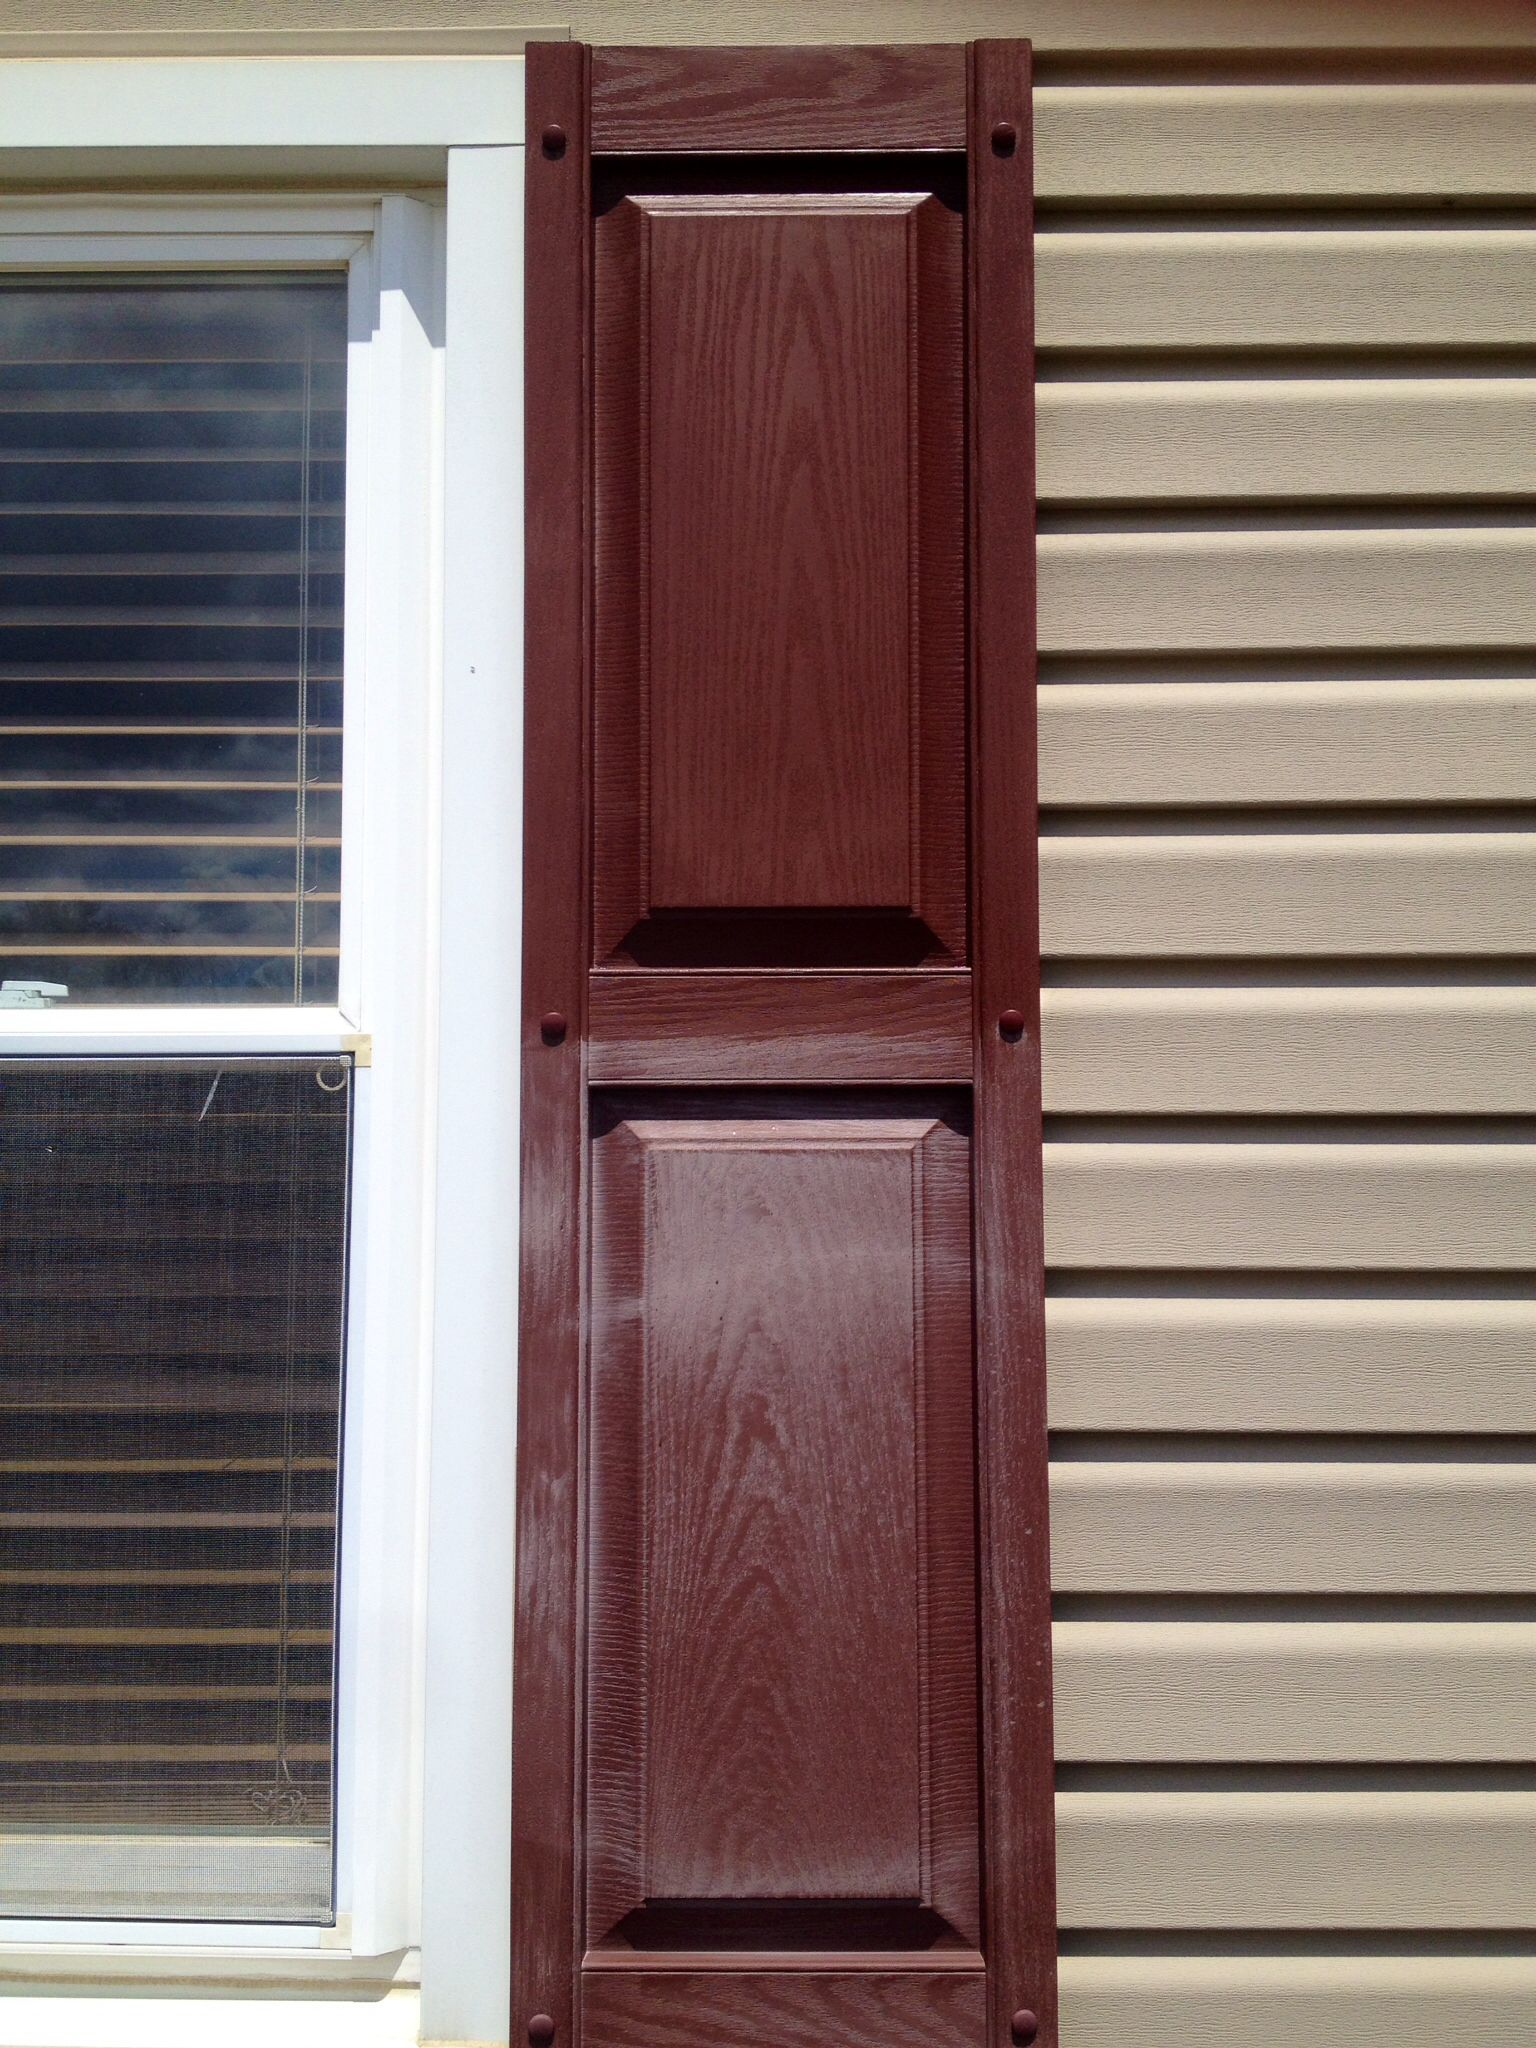 Clean Your Vinyl Shutters With Armorall Instead Of Painting Them